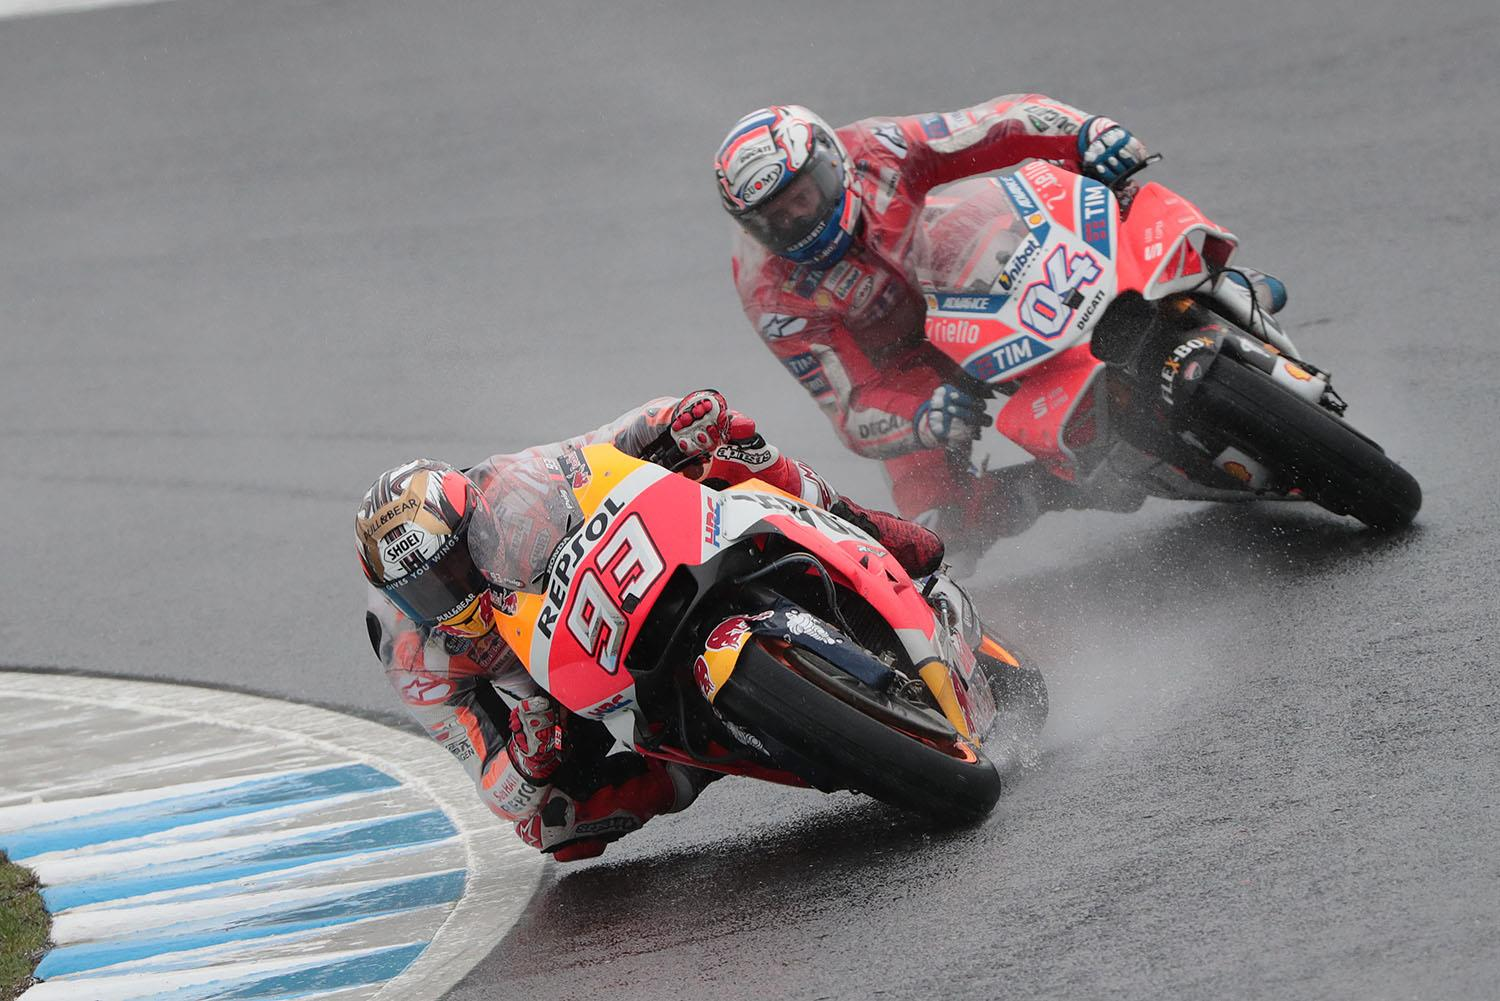 Pedrosa grabs MotoGP pole as Marquez crashes